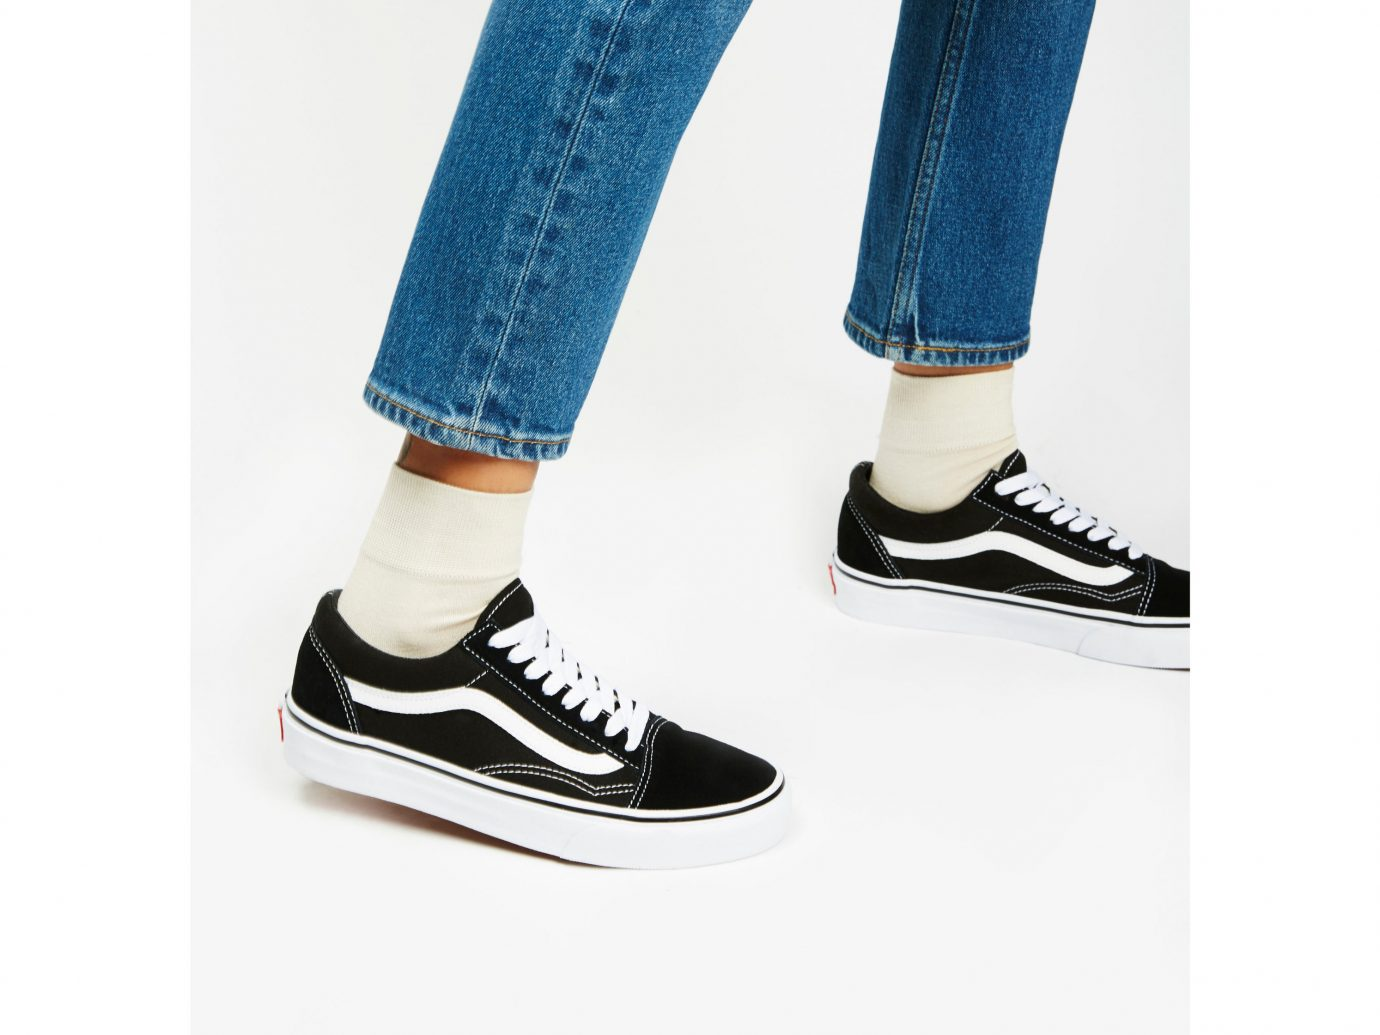 Style + Design person footwear shoe sneakers woman leather leg brand human body shoes textile lady feet dressed female